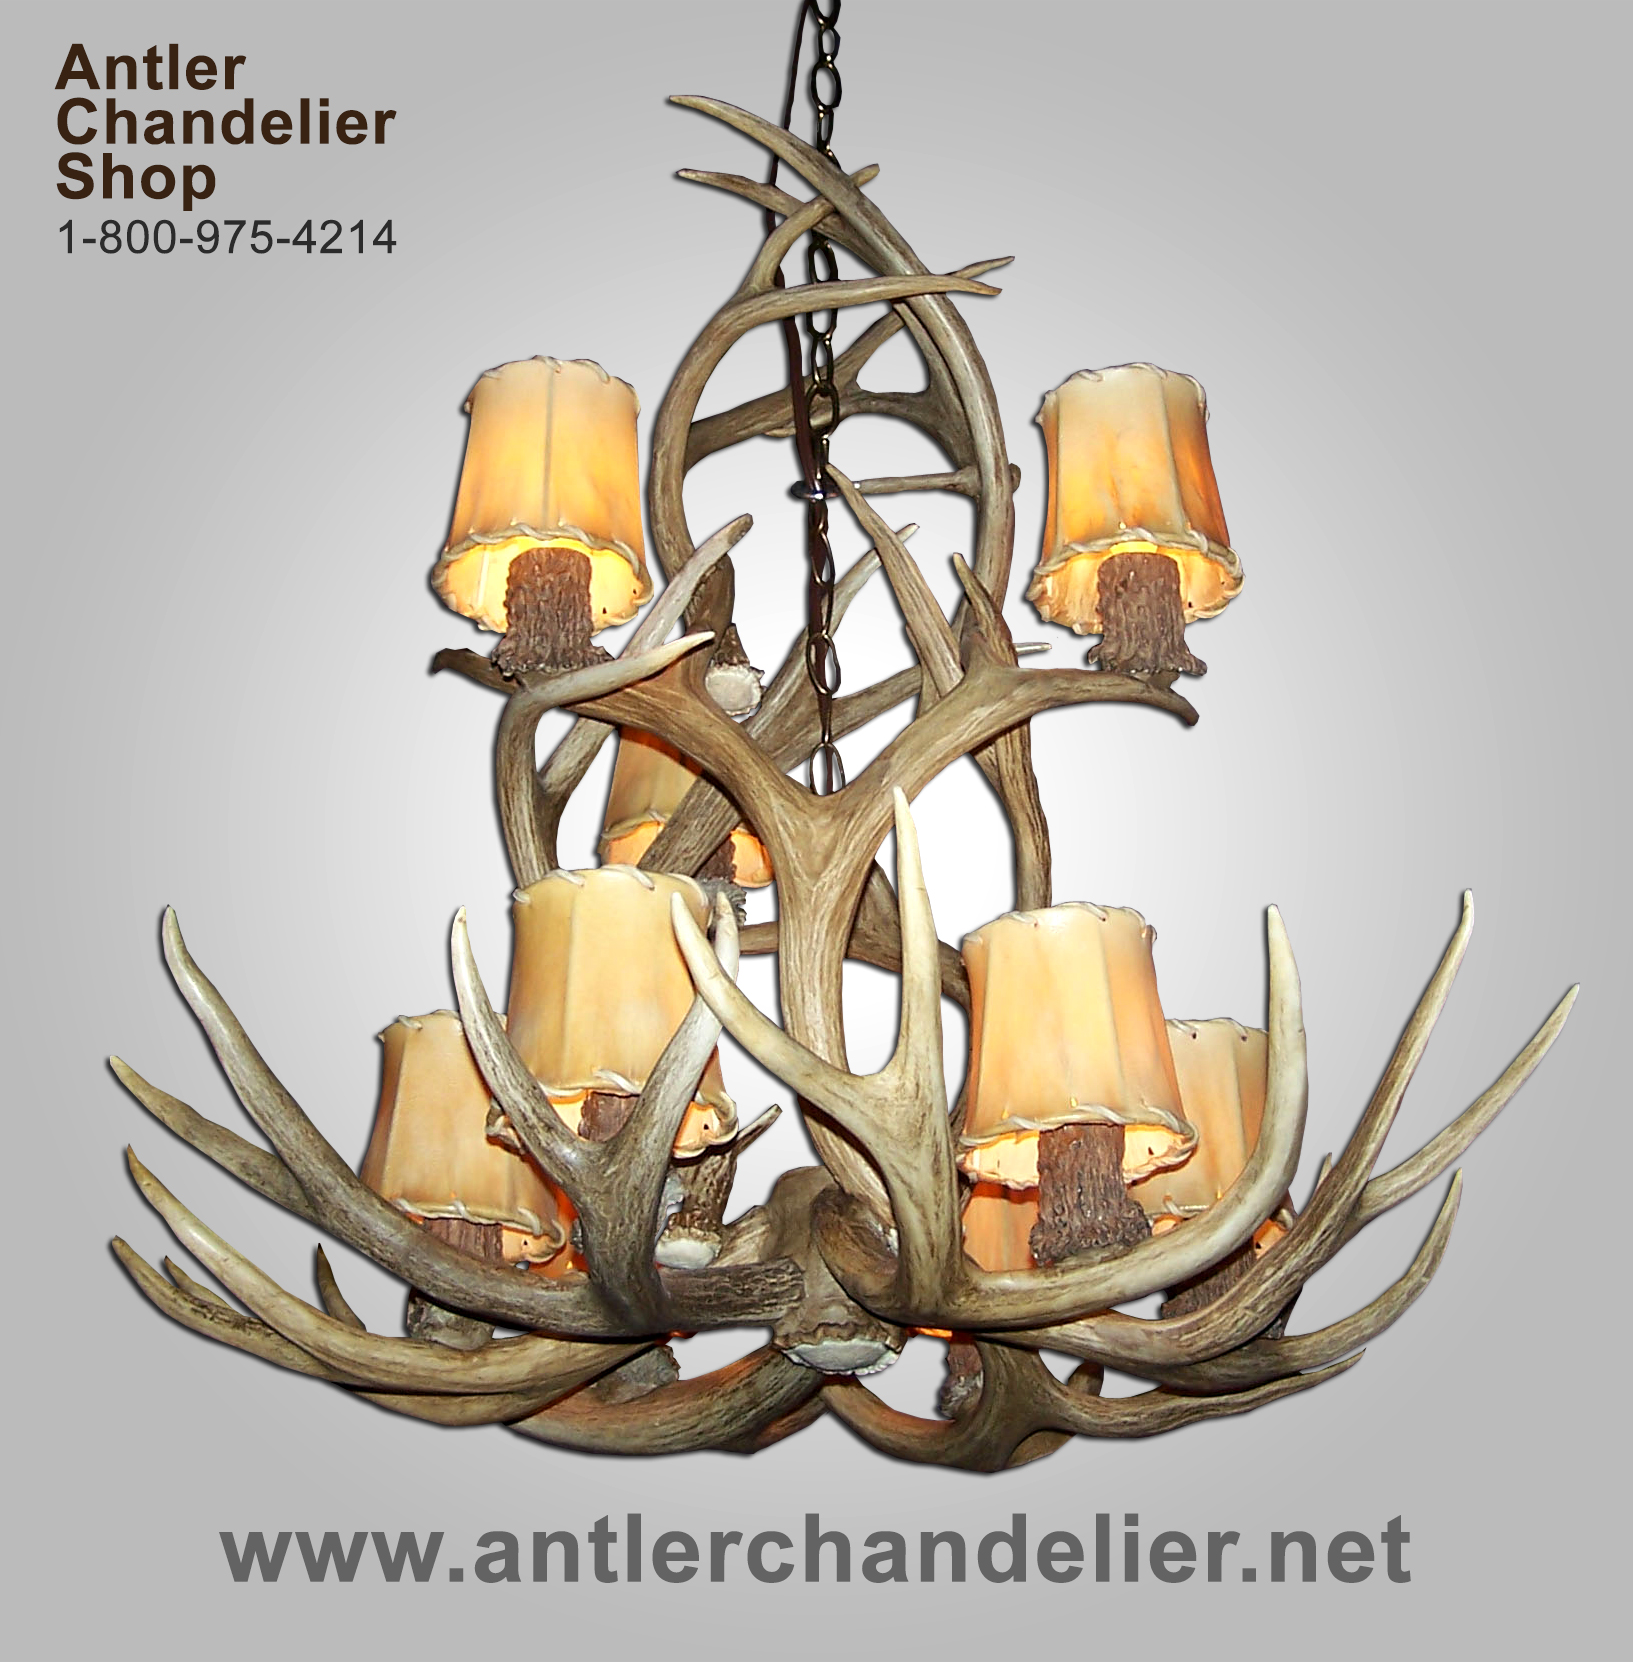 On Sale Today | Antler Chandelier